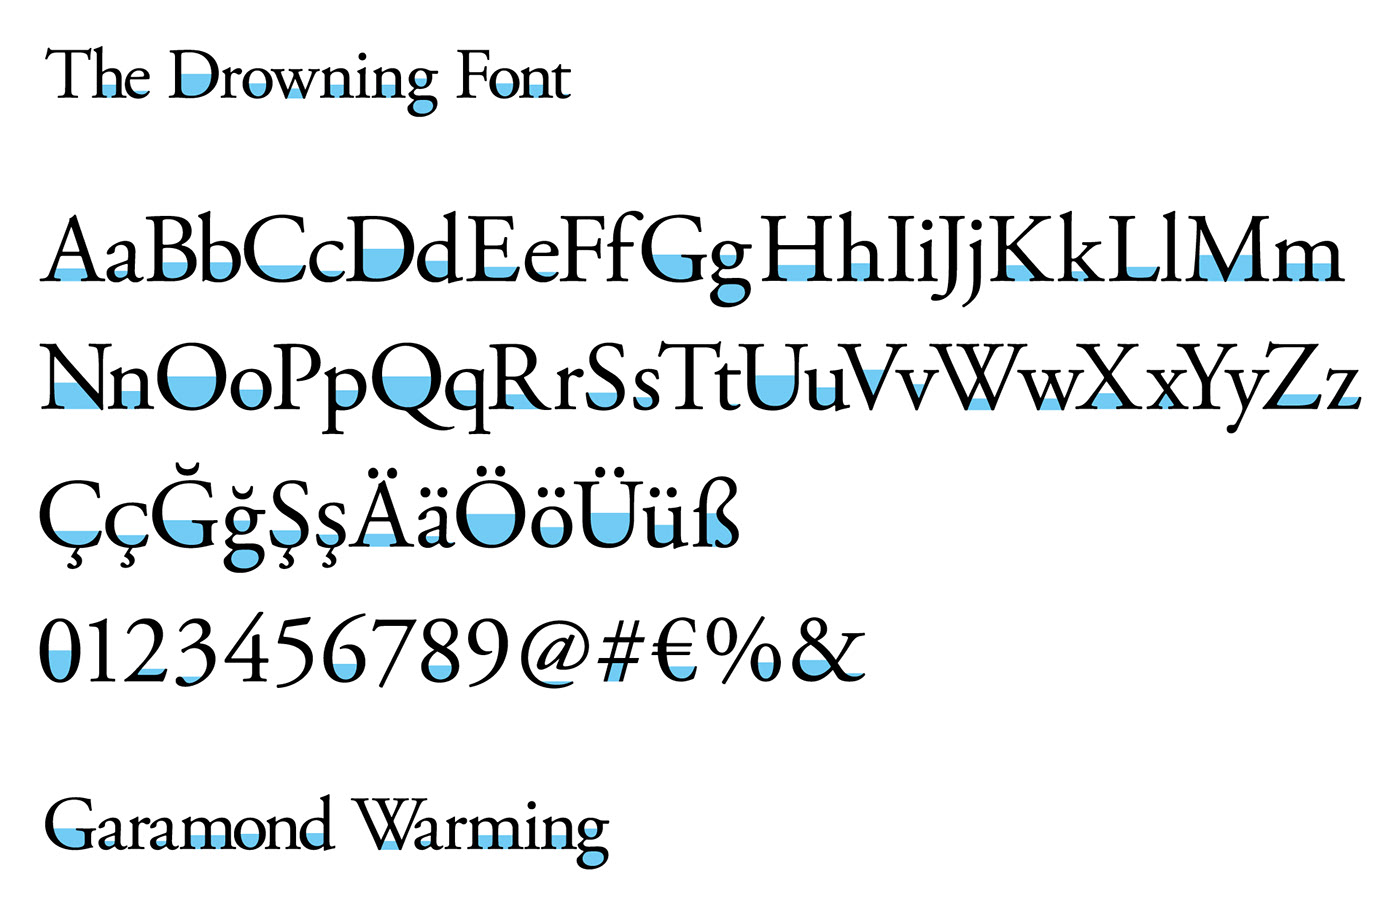 The Drowning Font